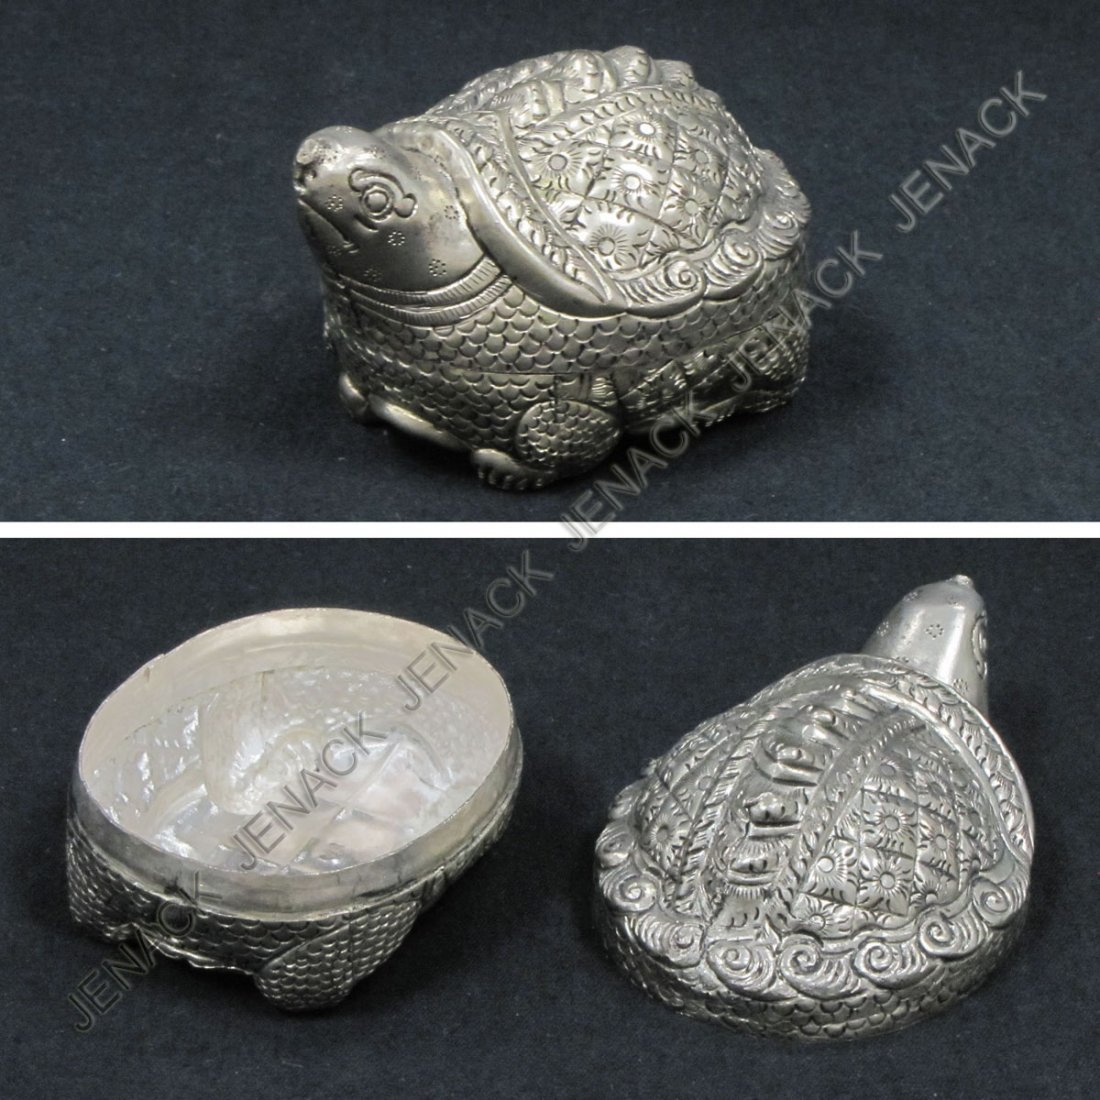 18: CAMBODIAN SILVER TURTLE-FORM BOX, MARKED 90%